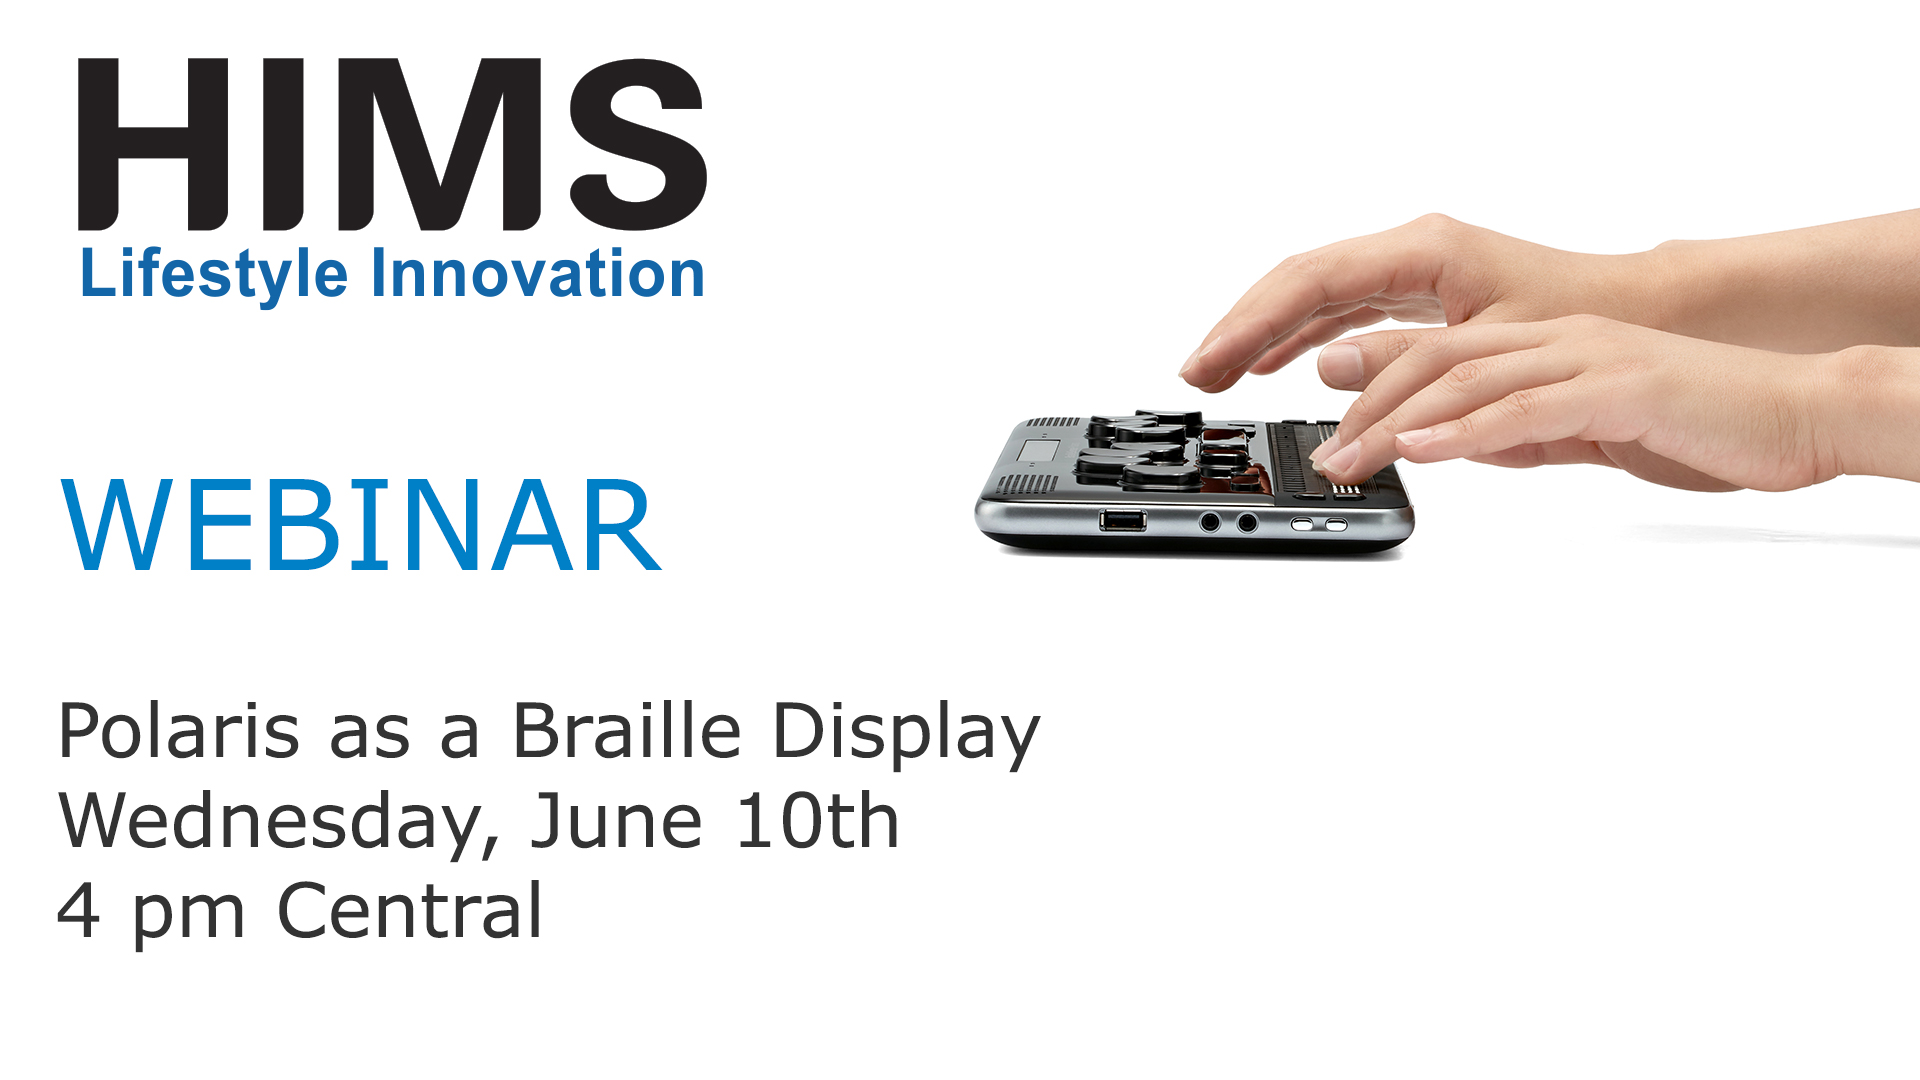 Webinar, Polaris as a Braille Display. Wednesday, June 10th, 4 pm Central